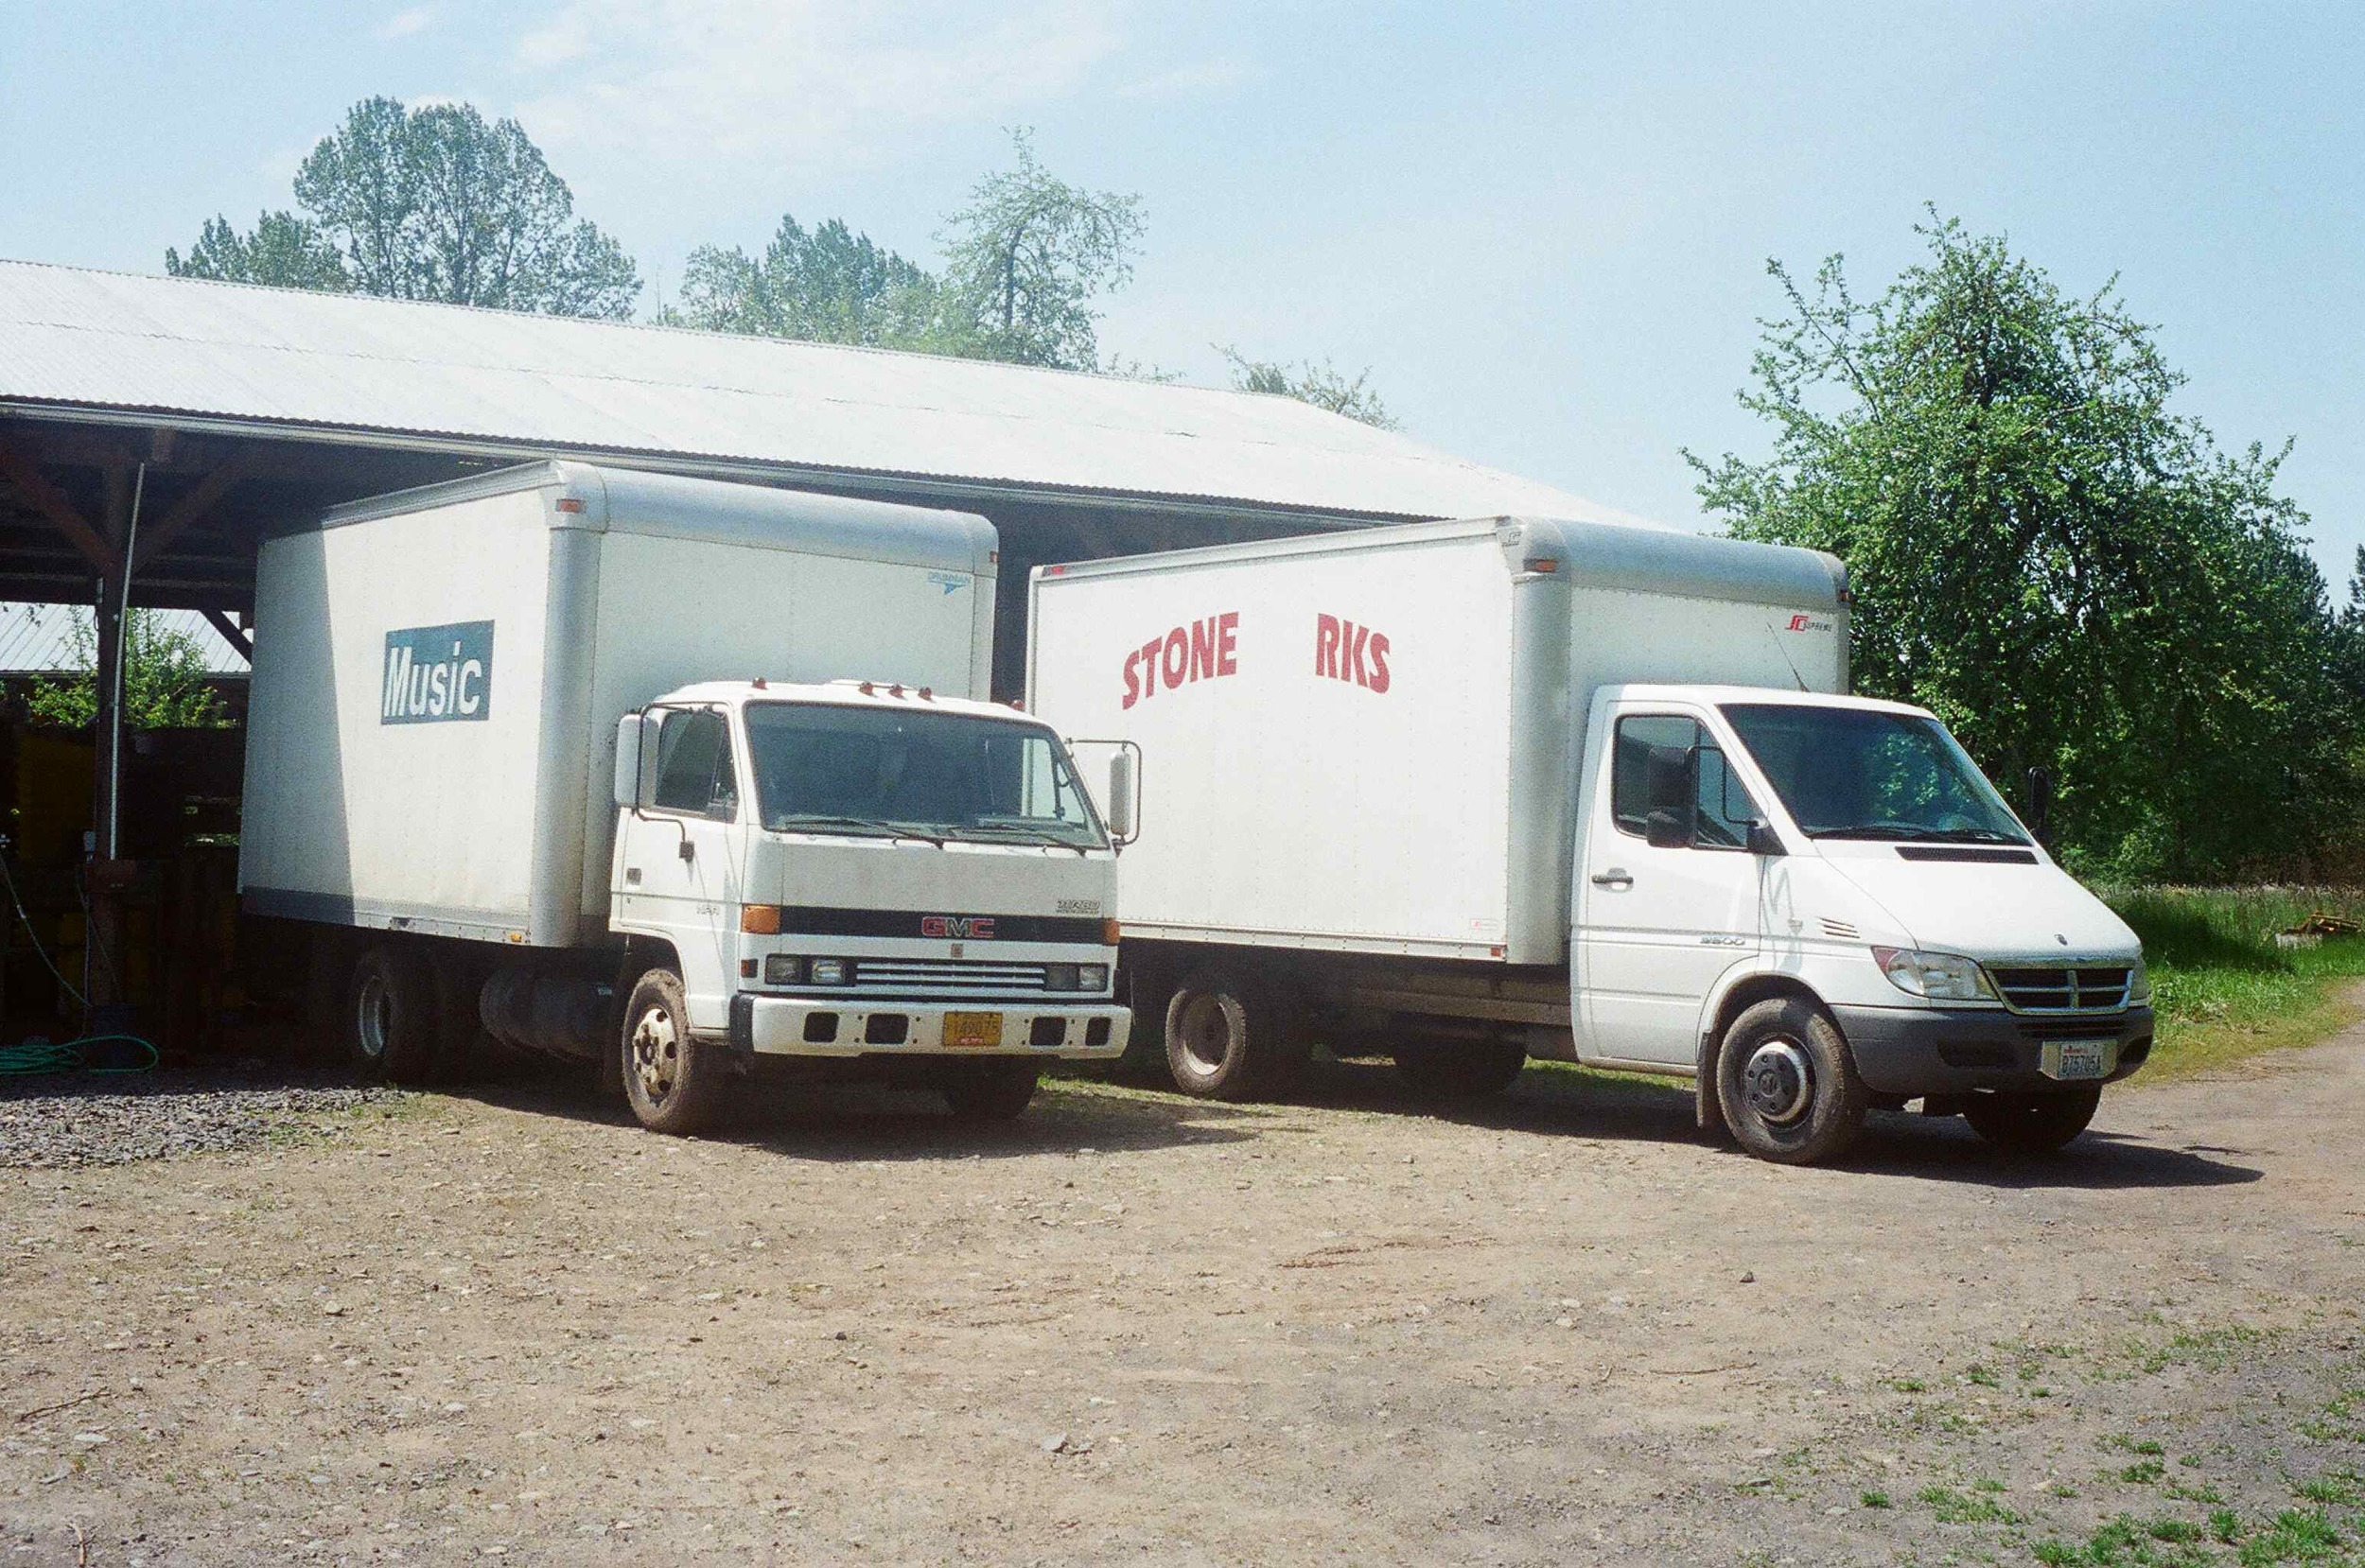 It takes a lot of diesel and air emissions to get our produce to market. We mitigate the impact by seeking out high efficiency vehicles. The Sprinter on the right gets 18 mpg while the Isuzu on the left only gets 14 mpg.